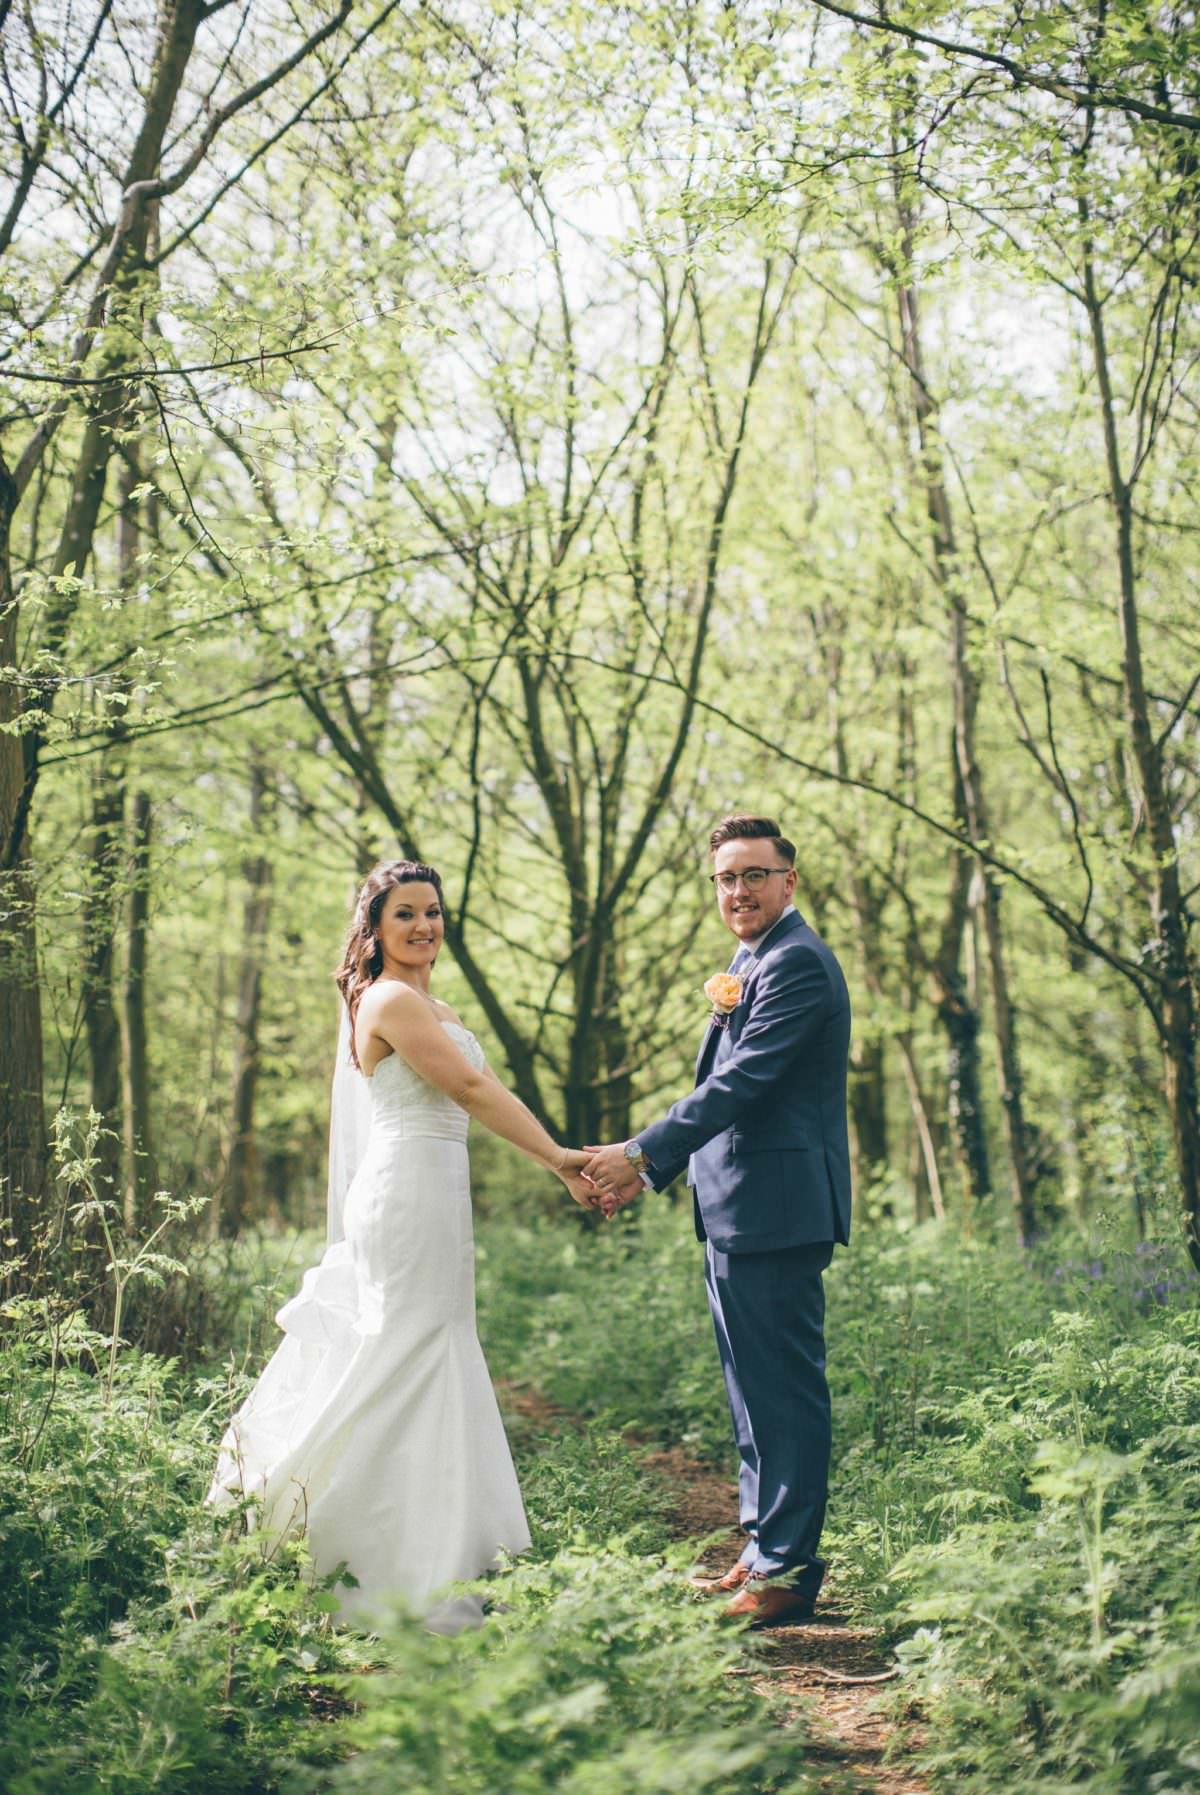 cripps_barn_gloucesterhsire_welsh_wedding_photographer_rachel_lambert_photography_jordan_amy_ 91